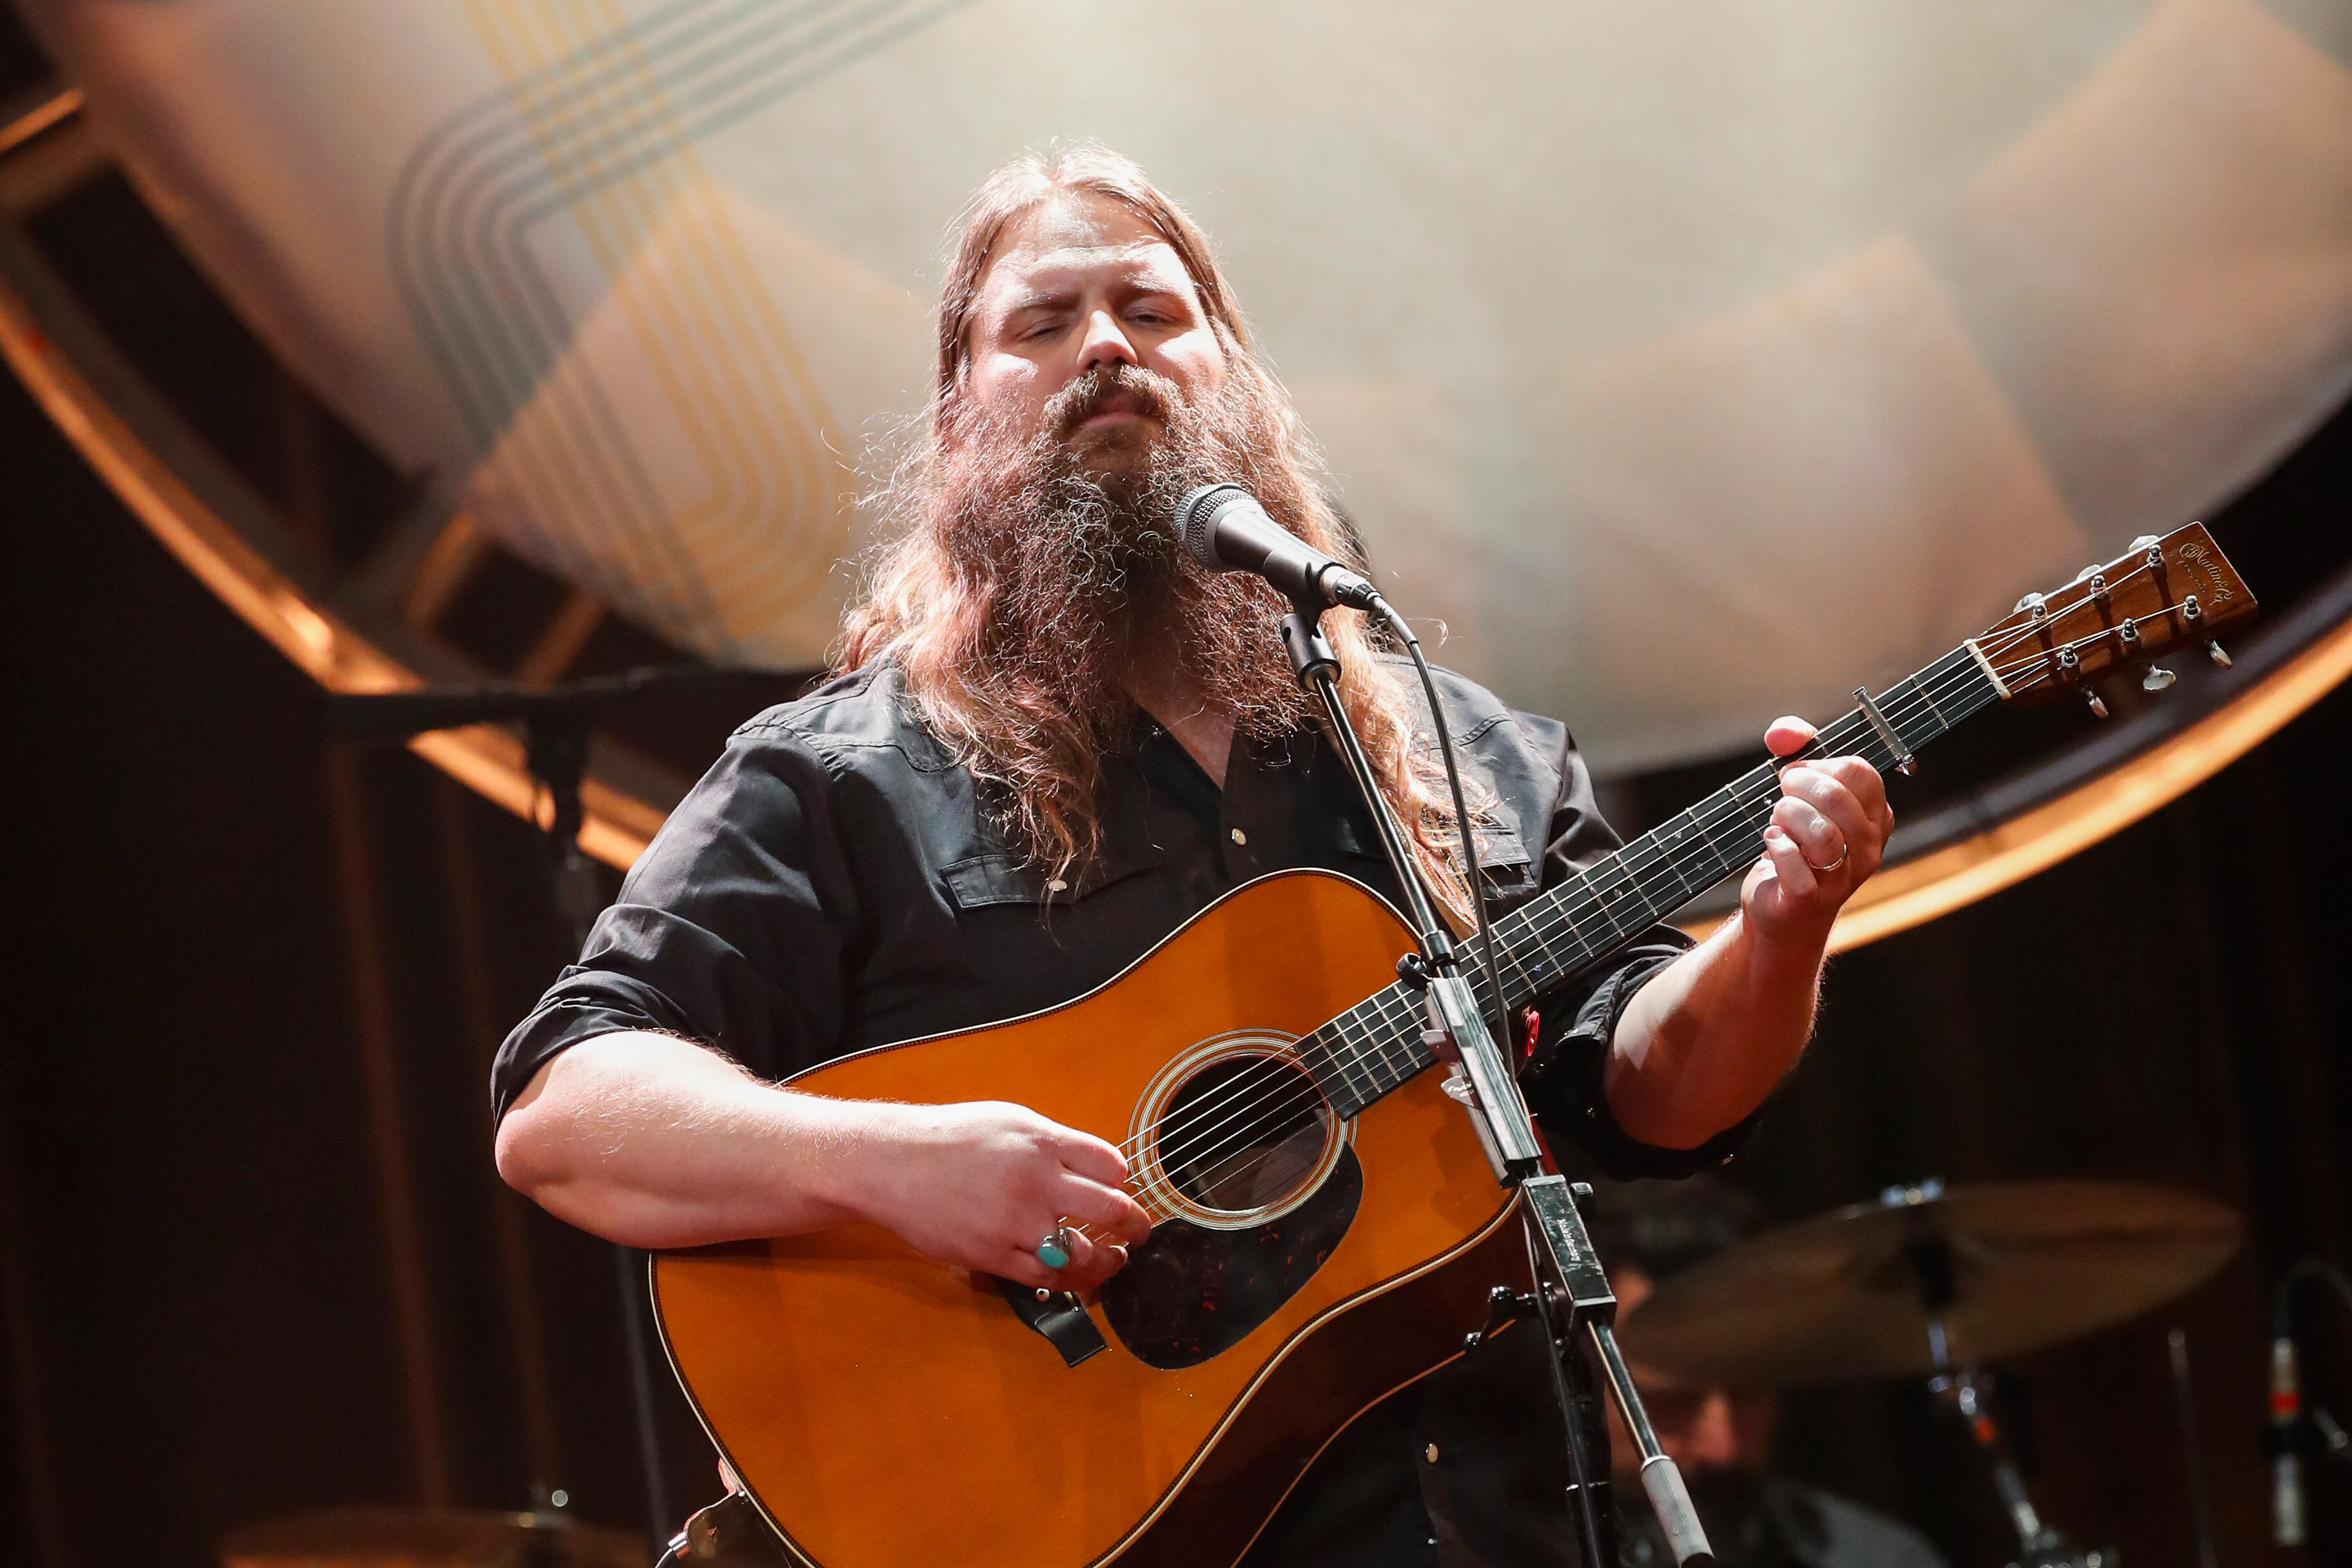 "FILE - In this Aug. 22, 2018, file photo, Chris Stapleton performs at the 12th Annual ACM Honors at the Ryman Auditorium in Nashville, Tenn. Stapleton tops the list of finalists with five nominations for the 52nd annual Country Music Association Awards. The nominations were announced Tuesday, Aug. 28, from entertainer Luke Bryan's restaurant and bar in Nashville on ABC's ""Good Morning America."" (Photo by Al Wagner/Invision/AP, File)"